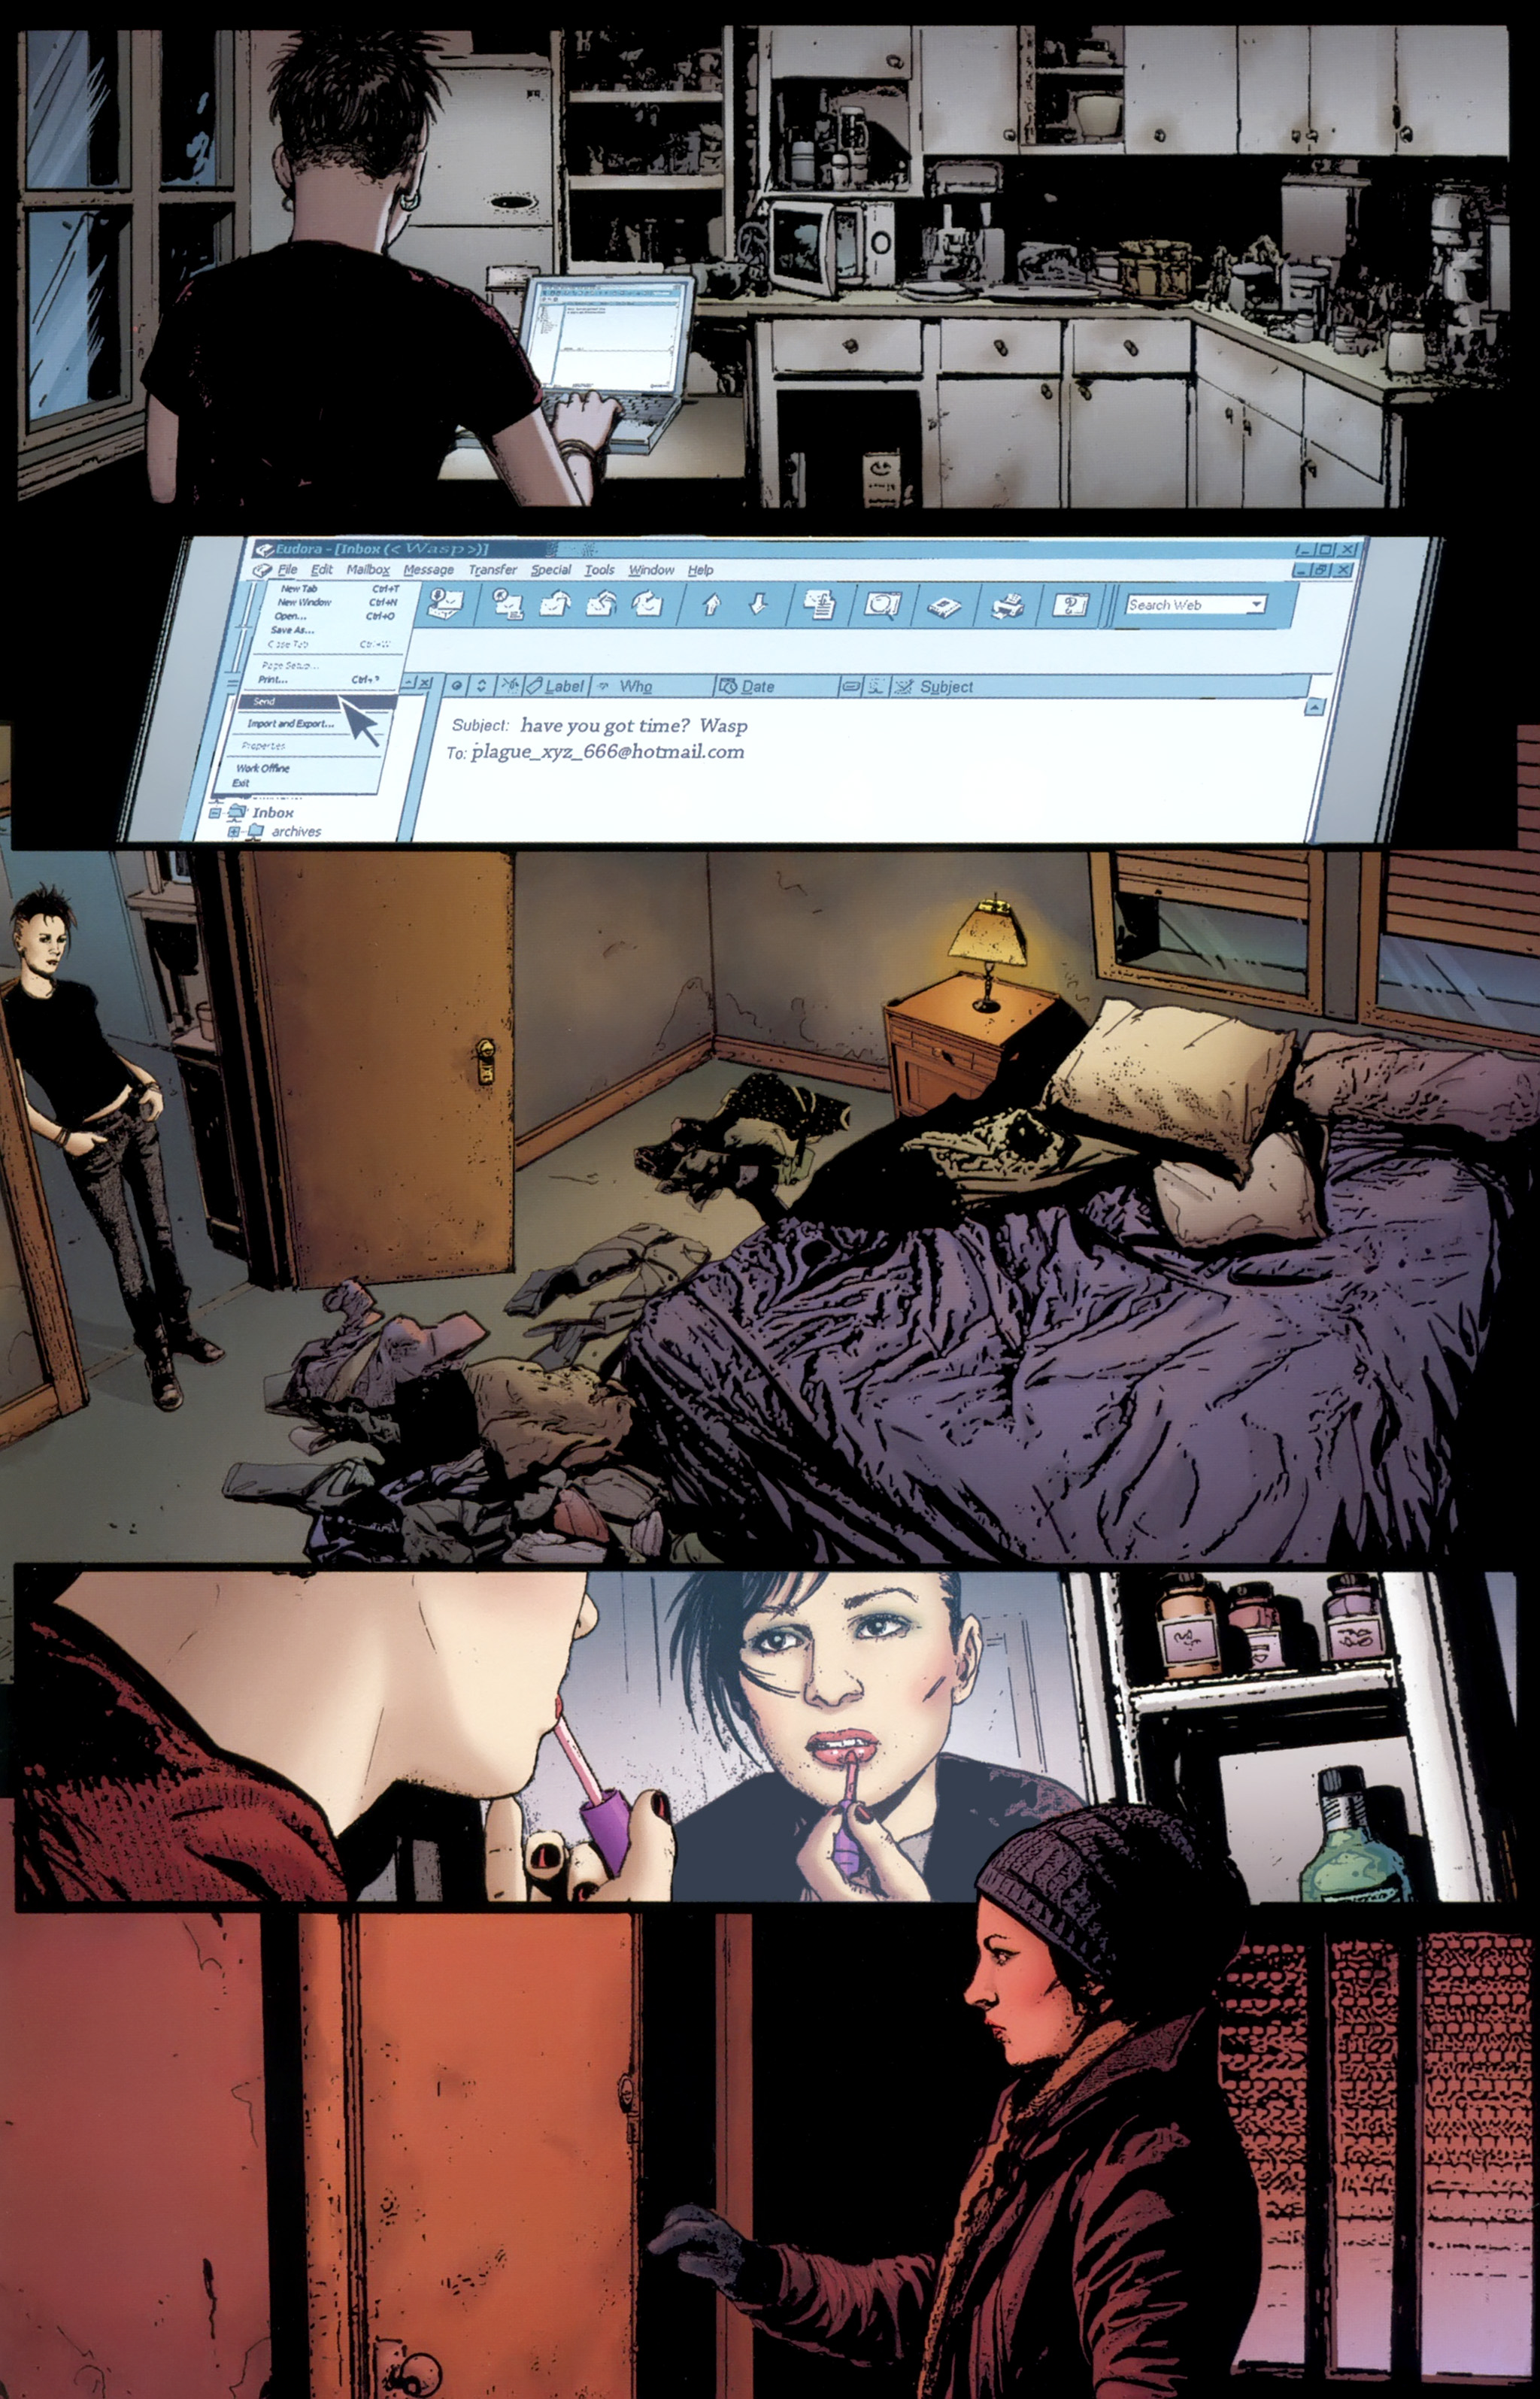 Read online The Girl With the Dragon Tattoo comic -  Issue # TPB 1 - 42